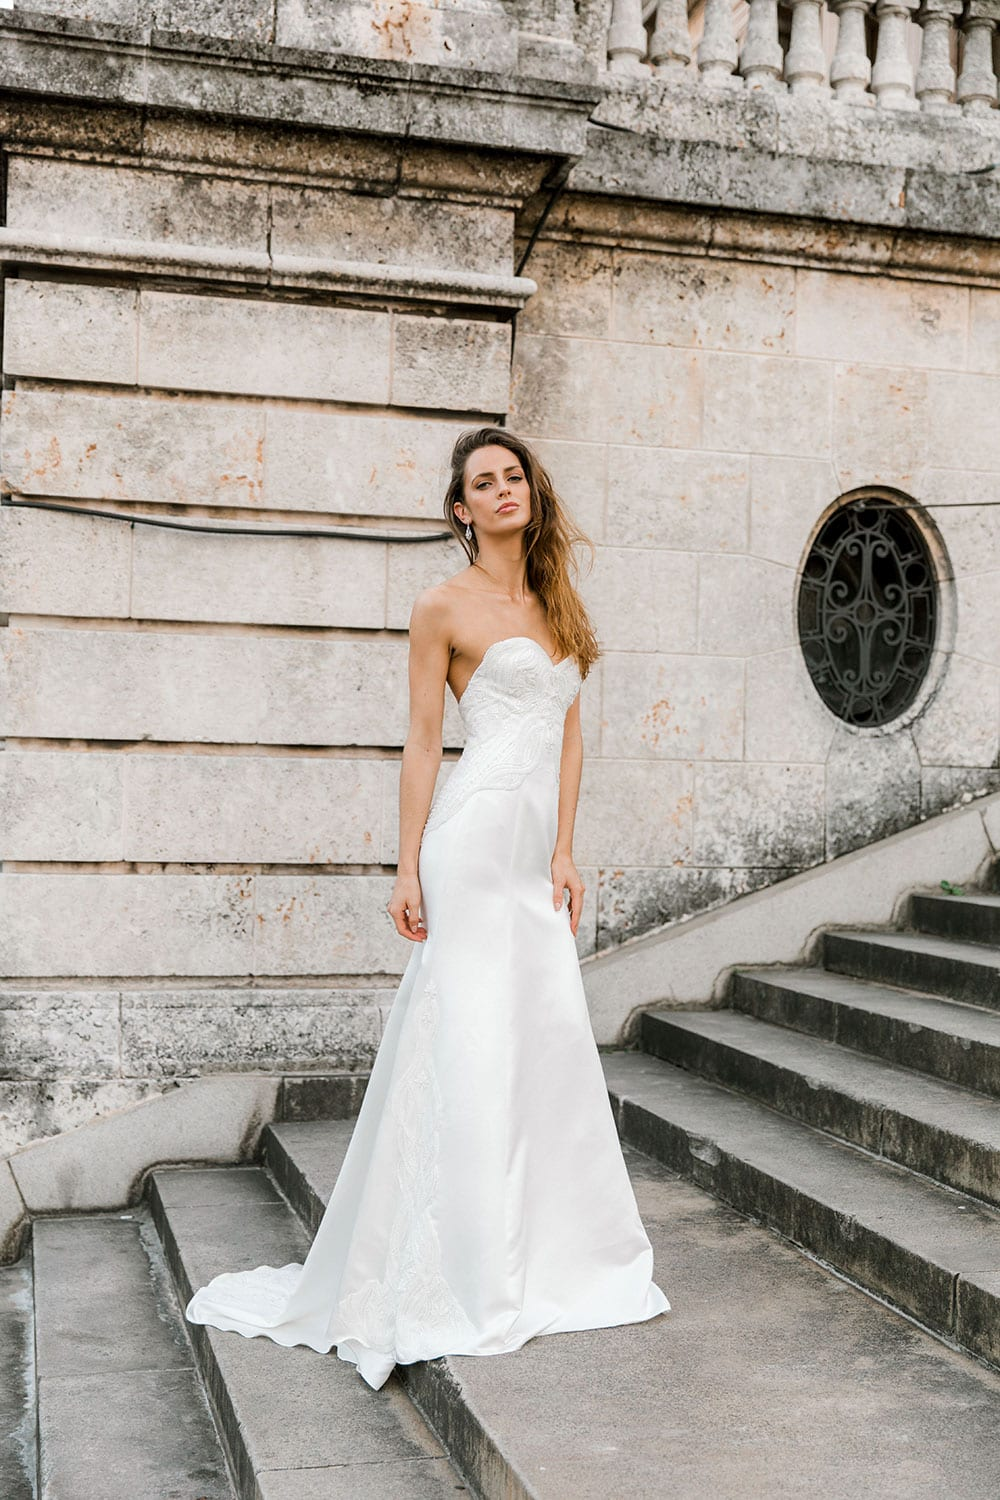 Model wearing Vinka Design Elsa Wedding Dress, a Satin Princess Line Wedding Gown with bodice on steps in Havana